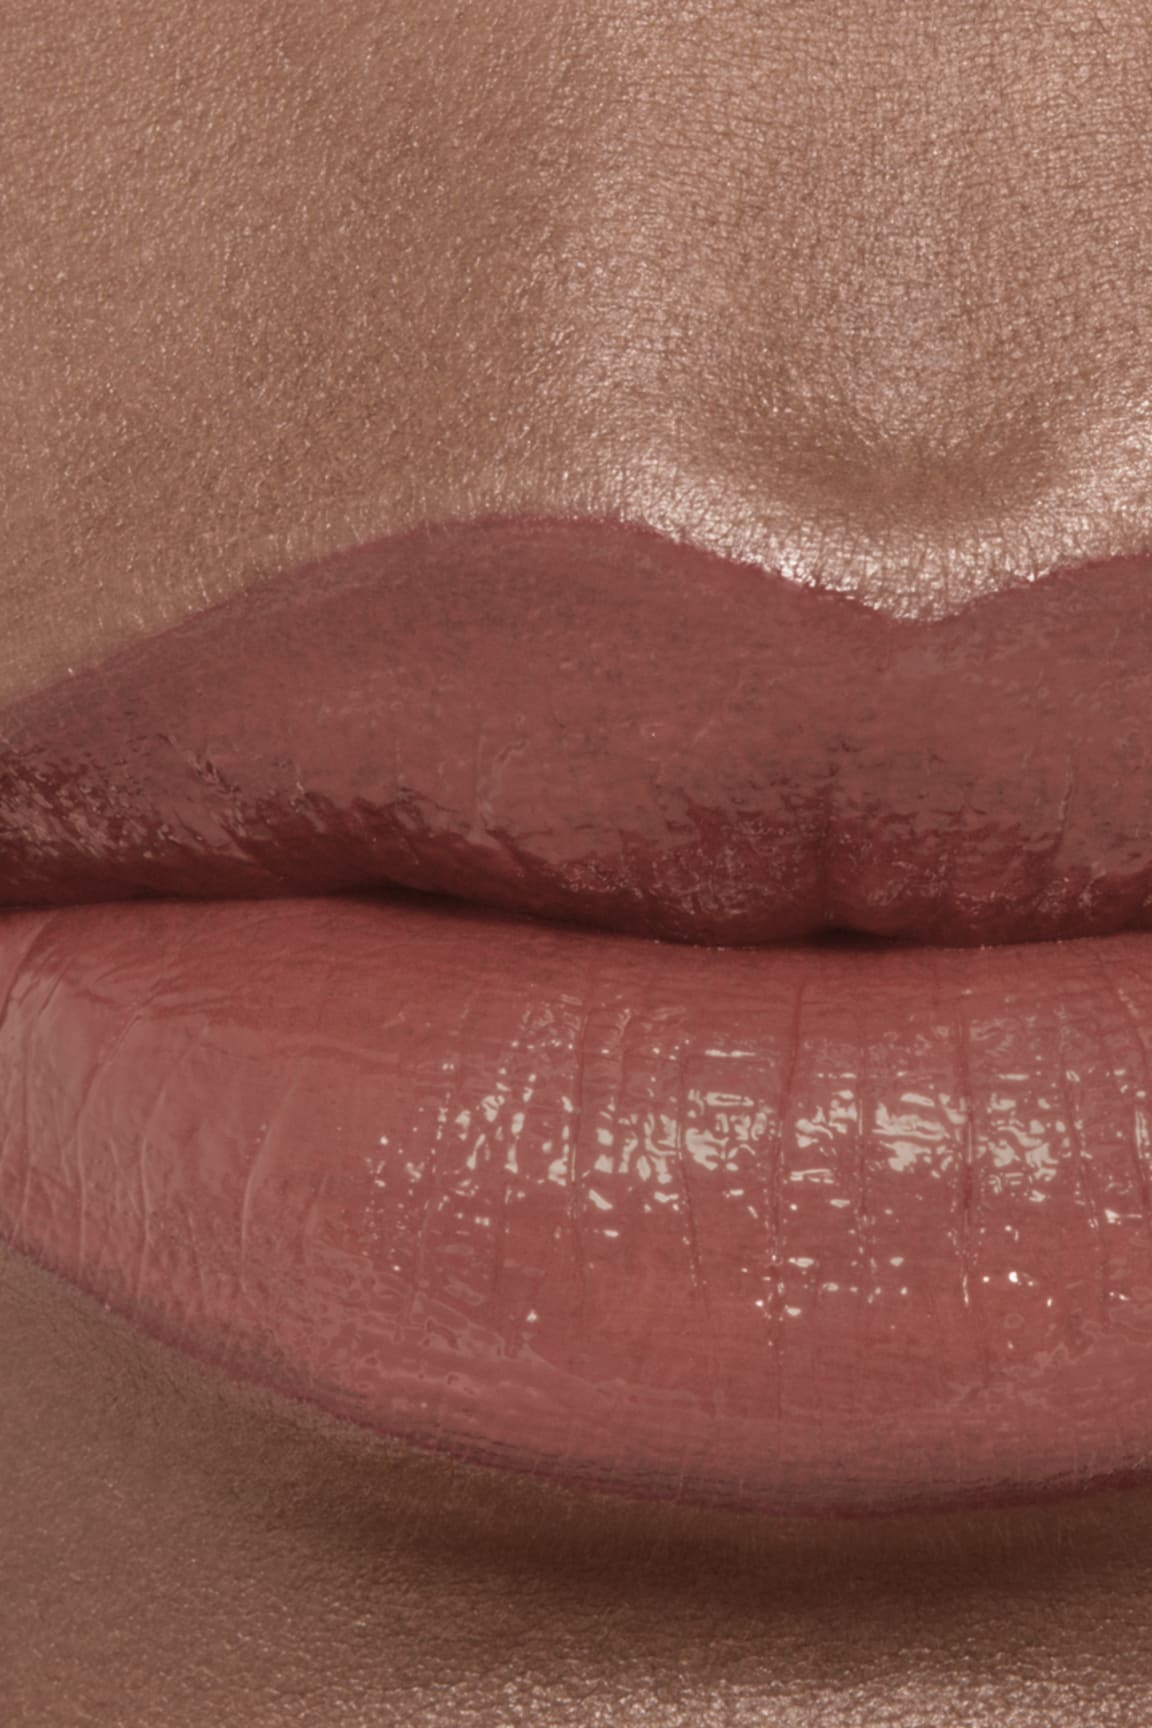 Application makeup visual 2 - ROUGE COCO BLOOM 112 - OPPORTUNITY